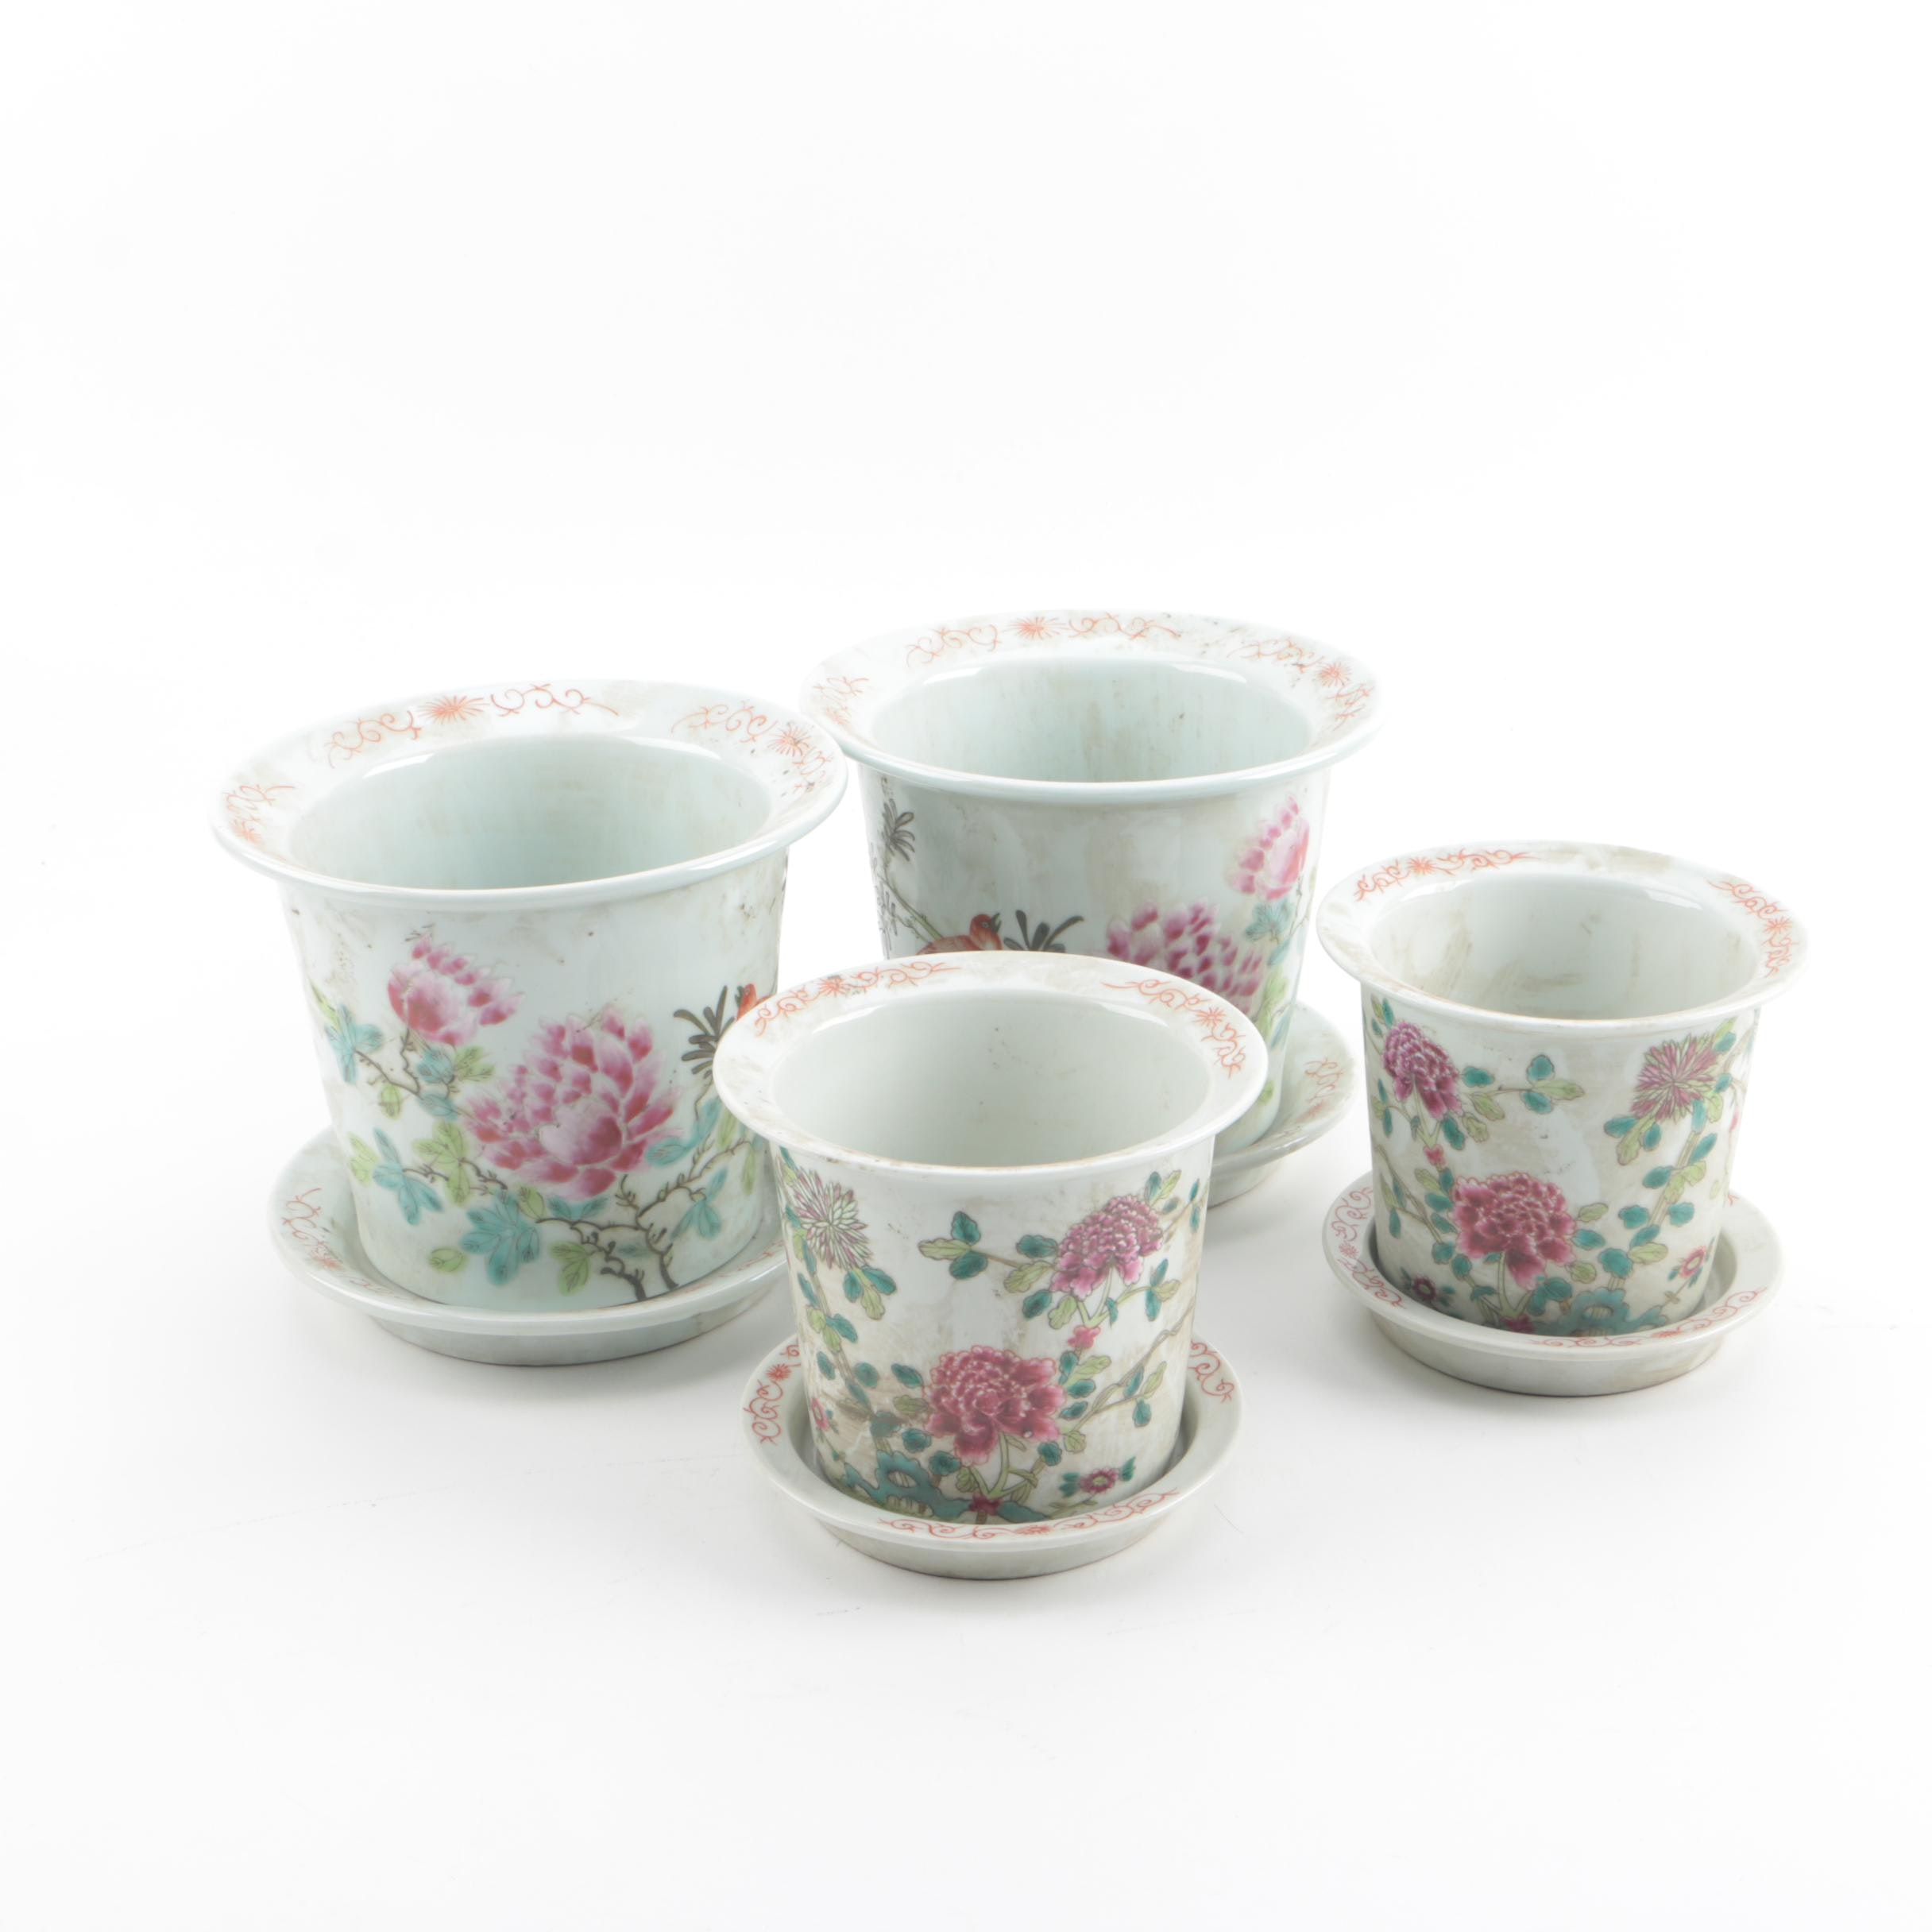 Chinese Republic Period Hand-Painted Floral Themed Porcelain Planters with Trays